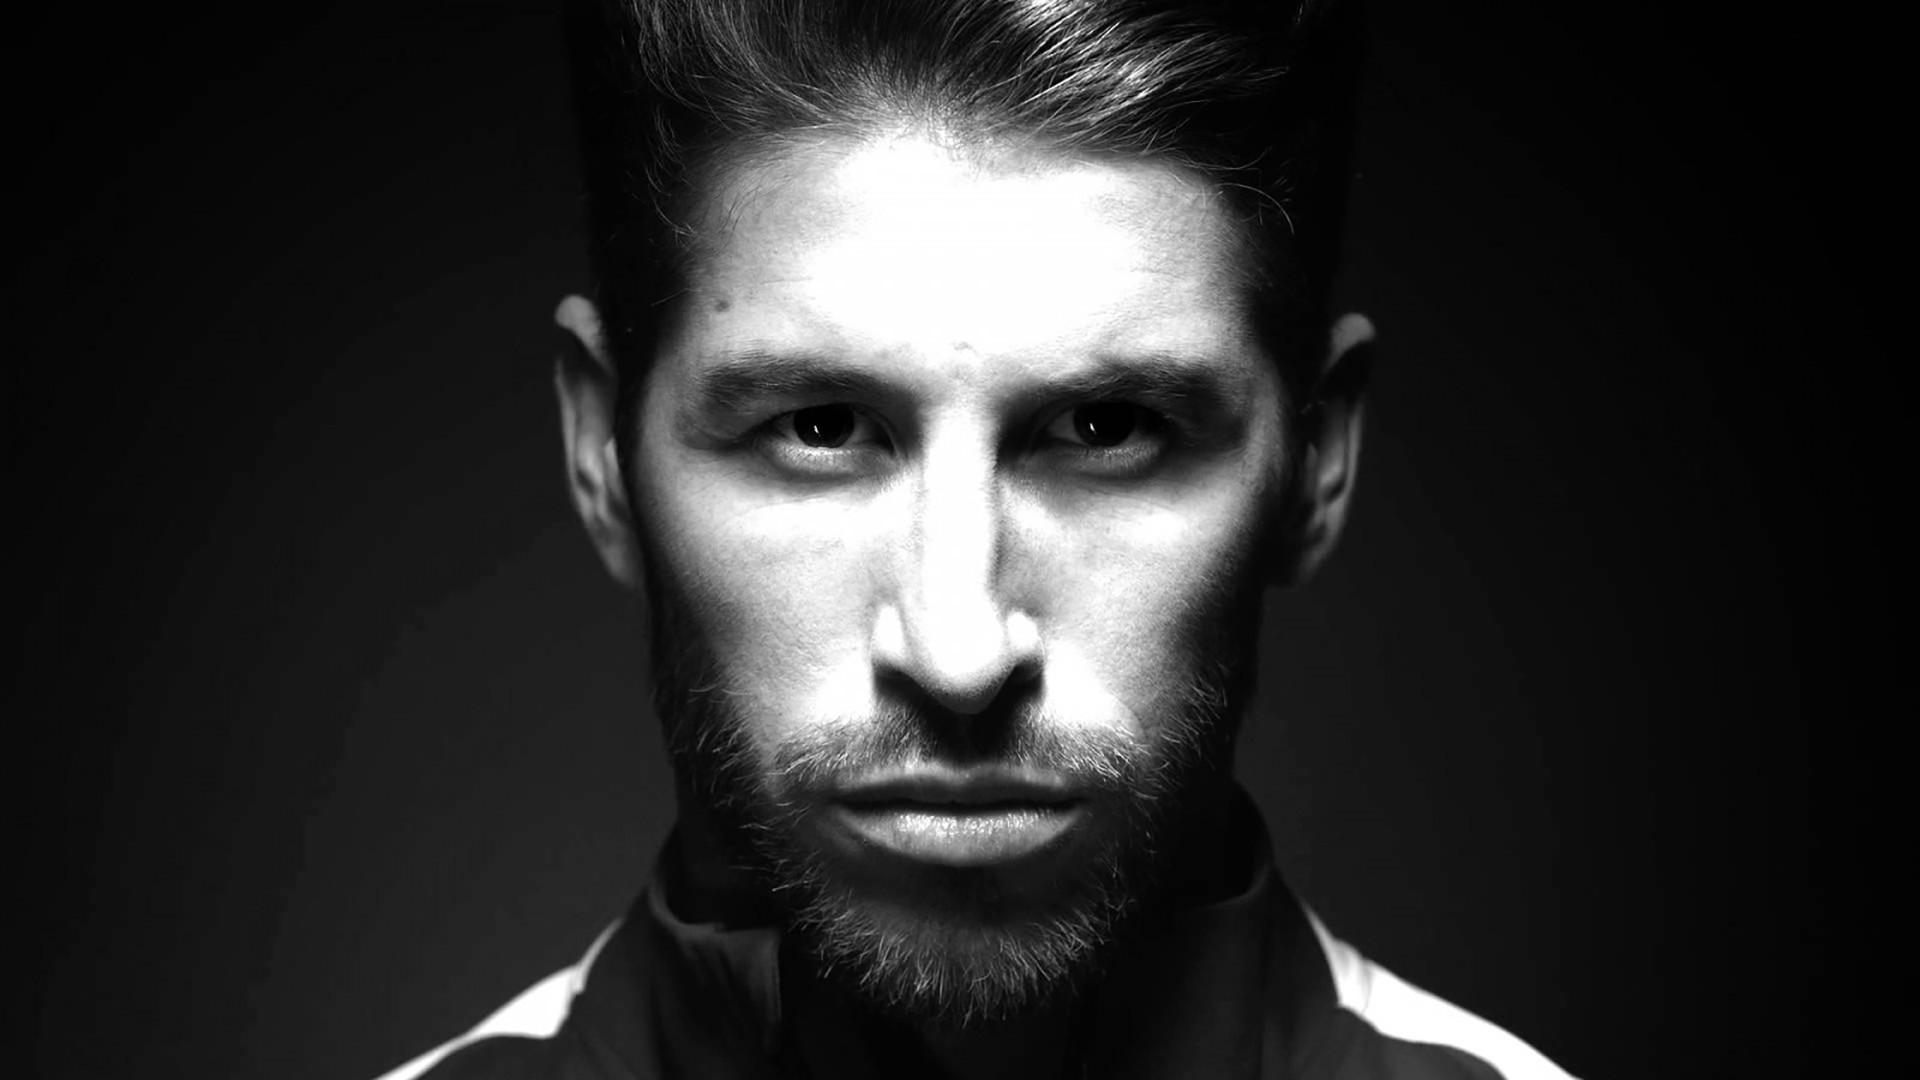 sergio ramos hd images - photo #31